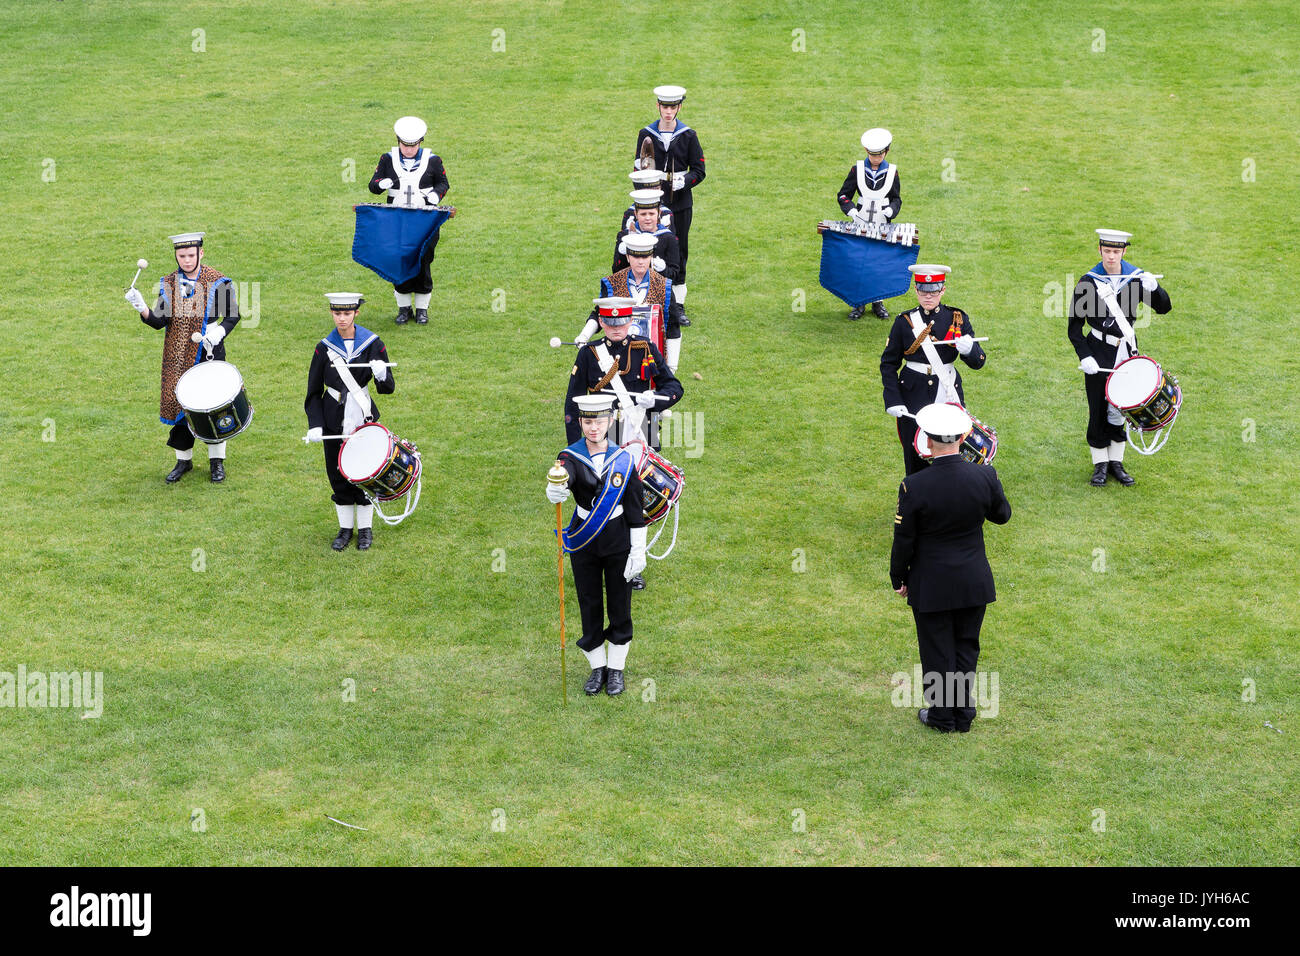 London, UK. 19th August 2017. Sea Cadets take part in the Sea Cadets National Band Competition held in the Tower of London, performing their precision routines in the moat of the Tower of London. Sea Cadets are the UK's largest maritime youth charity.Sea Cadets take part in the Sea Cadets National Band Competition held in the Tower of London, performing their precision routines in the moat of the Tower of London. Sea Cadets are the UK's largest maritime youth charity. Credit: Vickie Flores/Alamy Live News - Stock Image